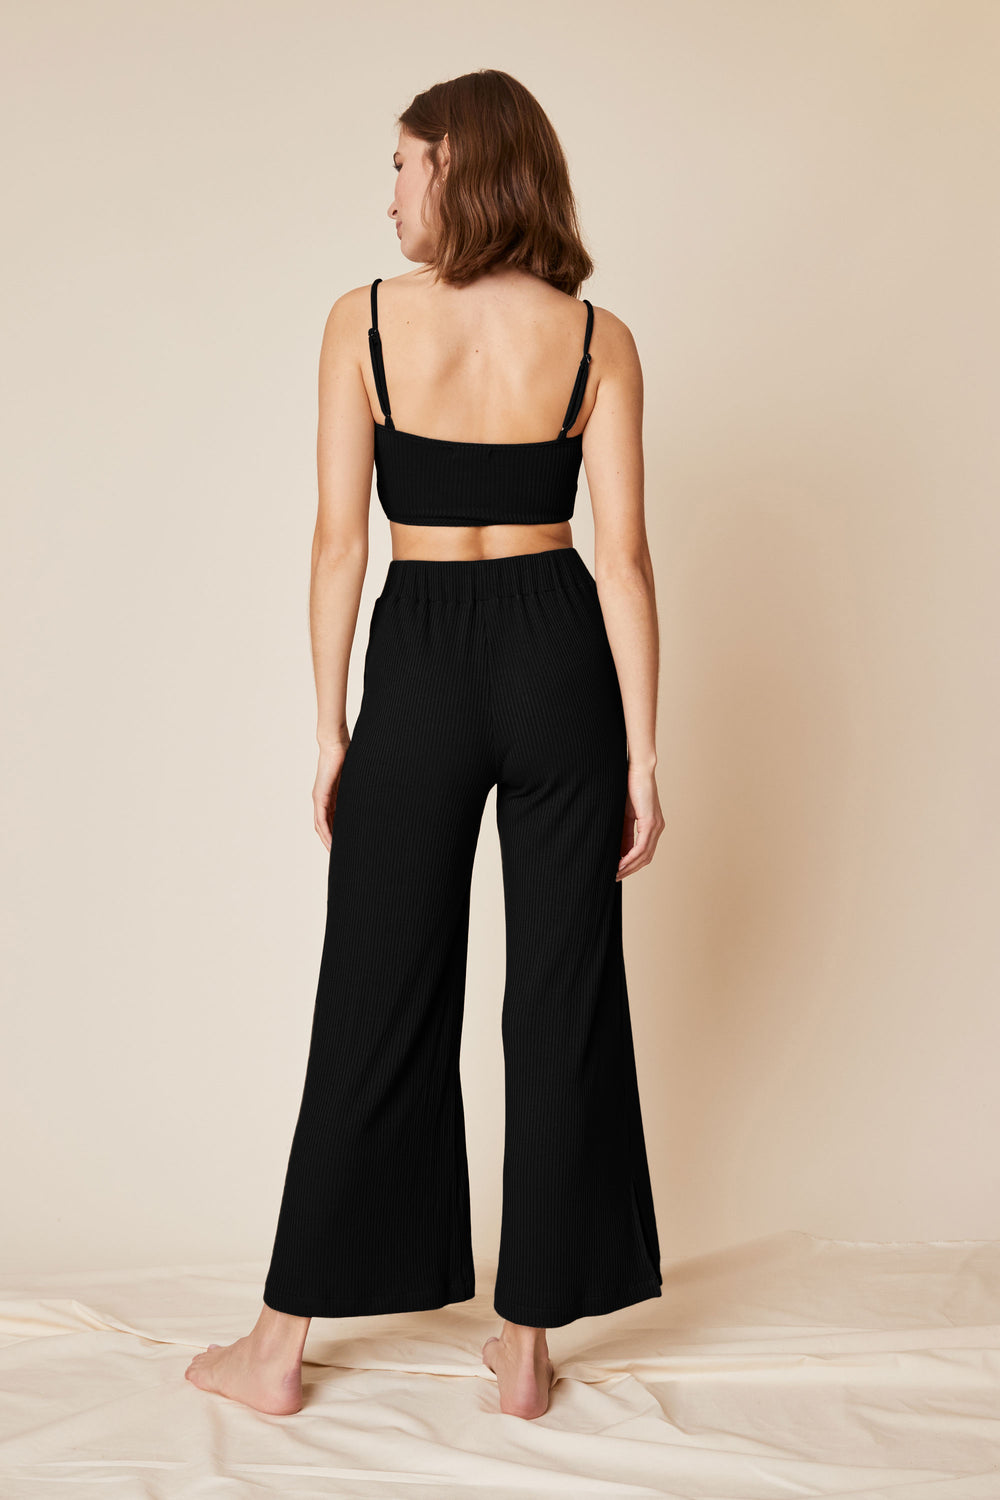 Norah Pant in Black Rib - Whimsy & Row